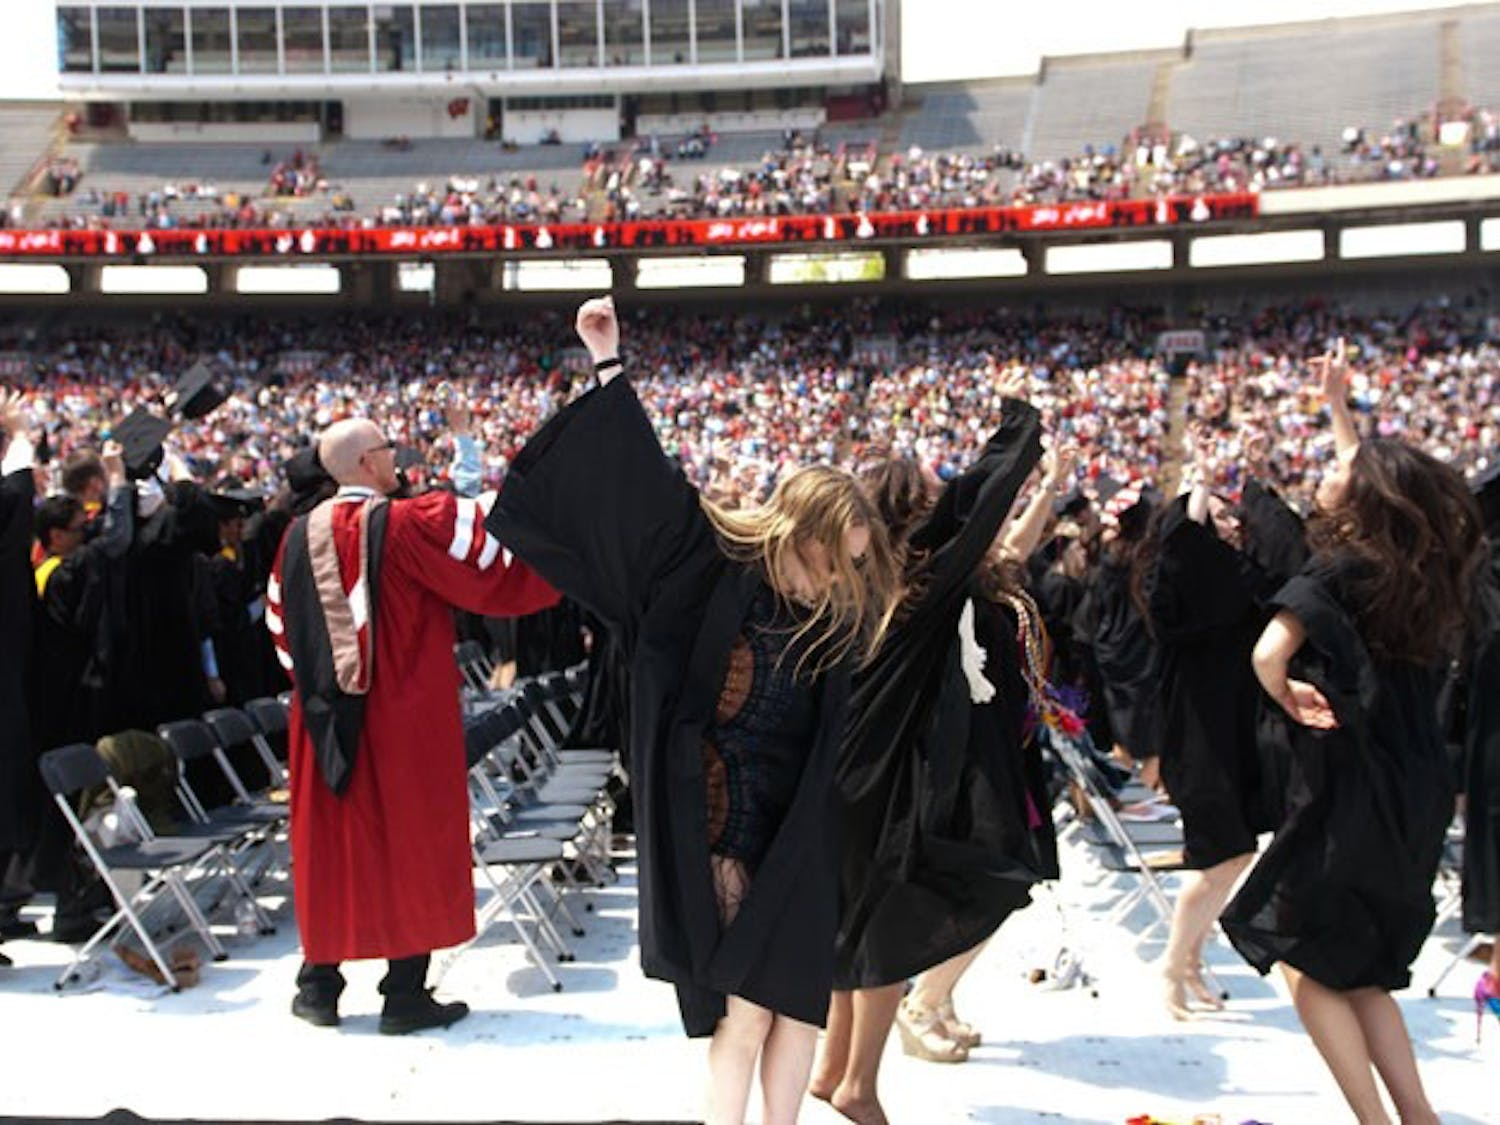 For the first time in over two decades, the University of Wisconsin-Madison's commencement ceremony was held in Camp Randall Stadium. Graduates did not walk across the stage; however they did take part in one of UW-Madison's most popular traditions: Jump Around. Former Utah Gov. Jon Huntsman was the keynote speaker.